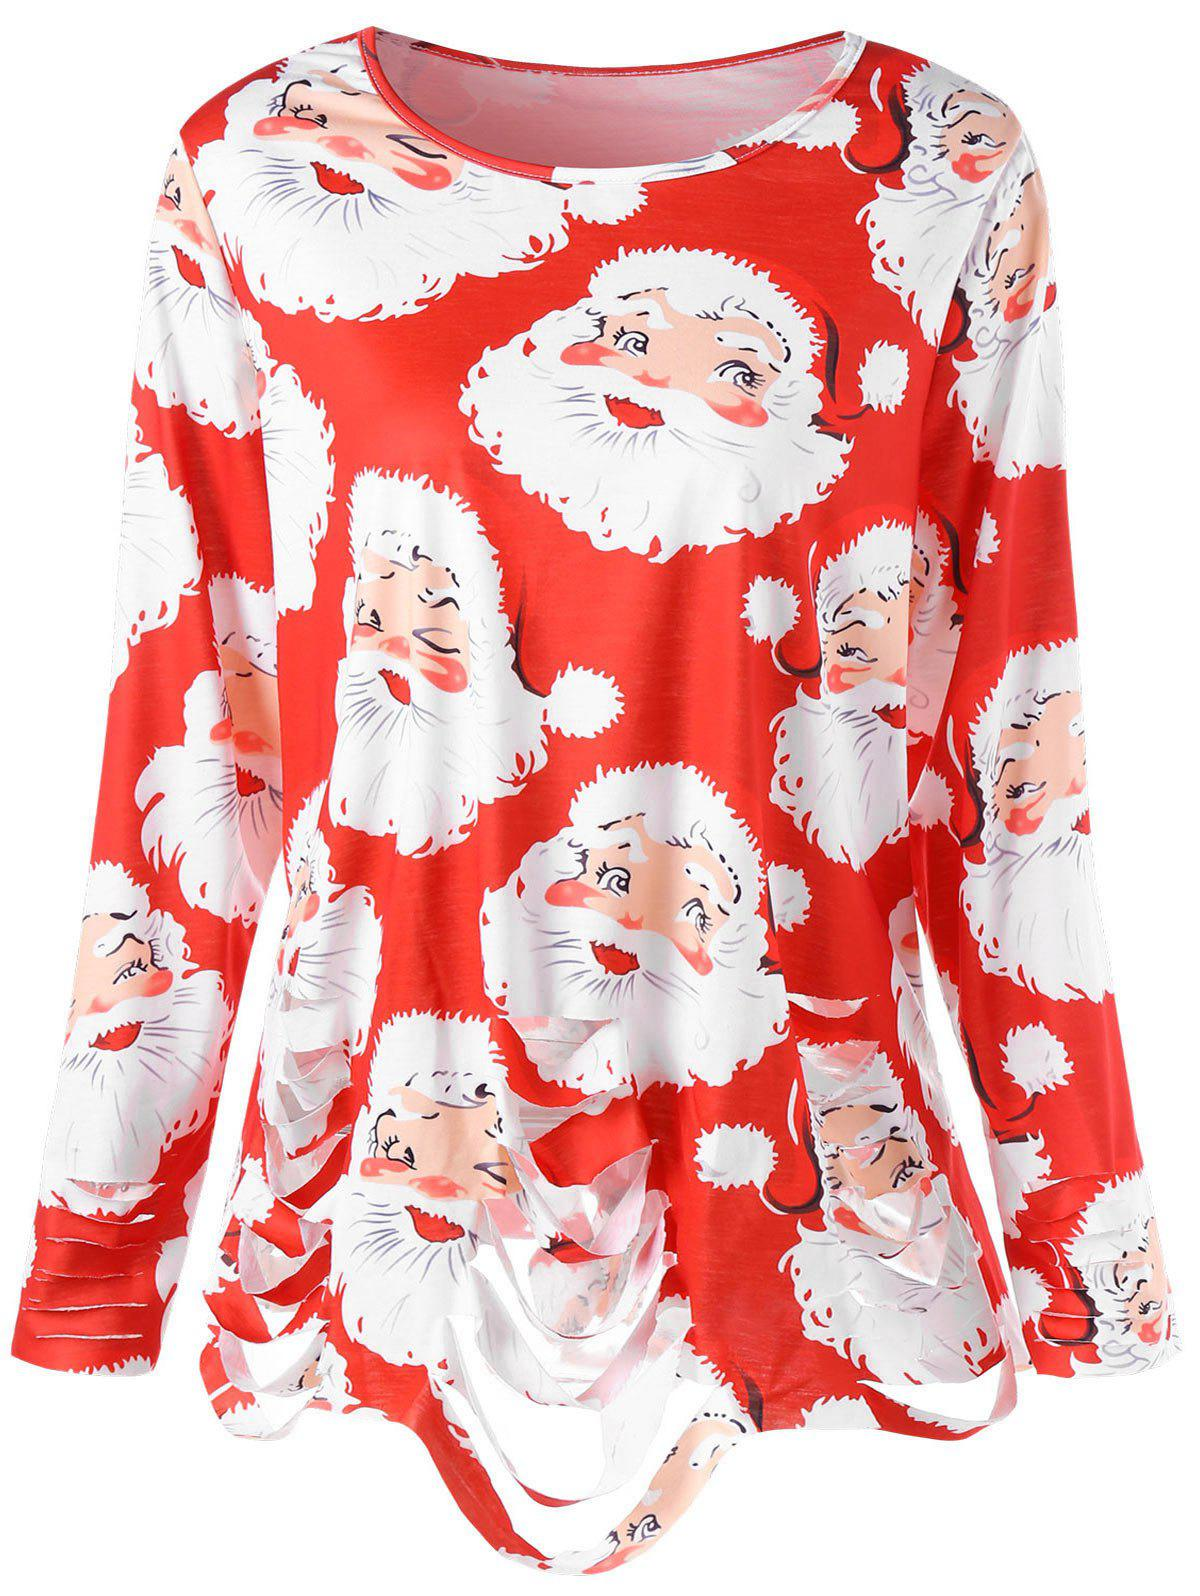 Fashion Plus Size Santa Claus Print Ripped Christmas T-shirt